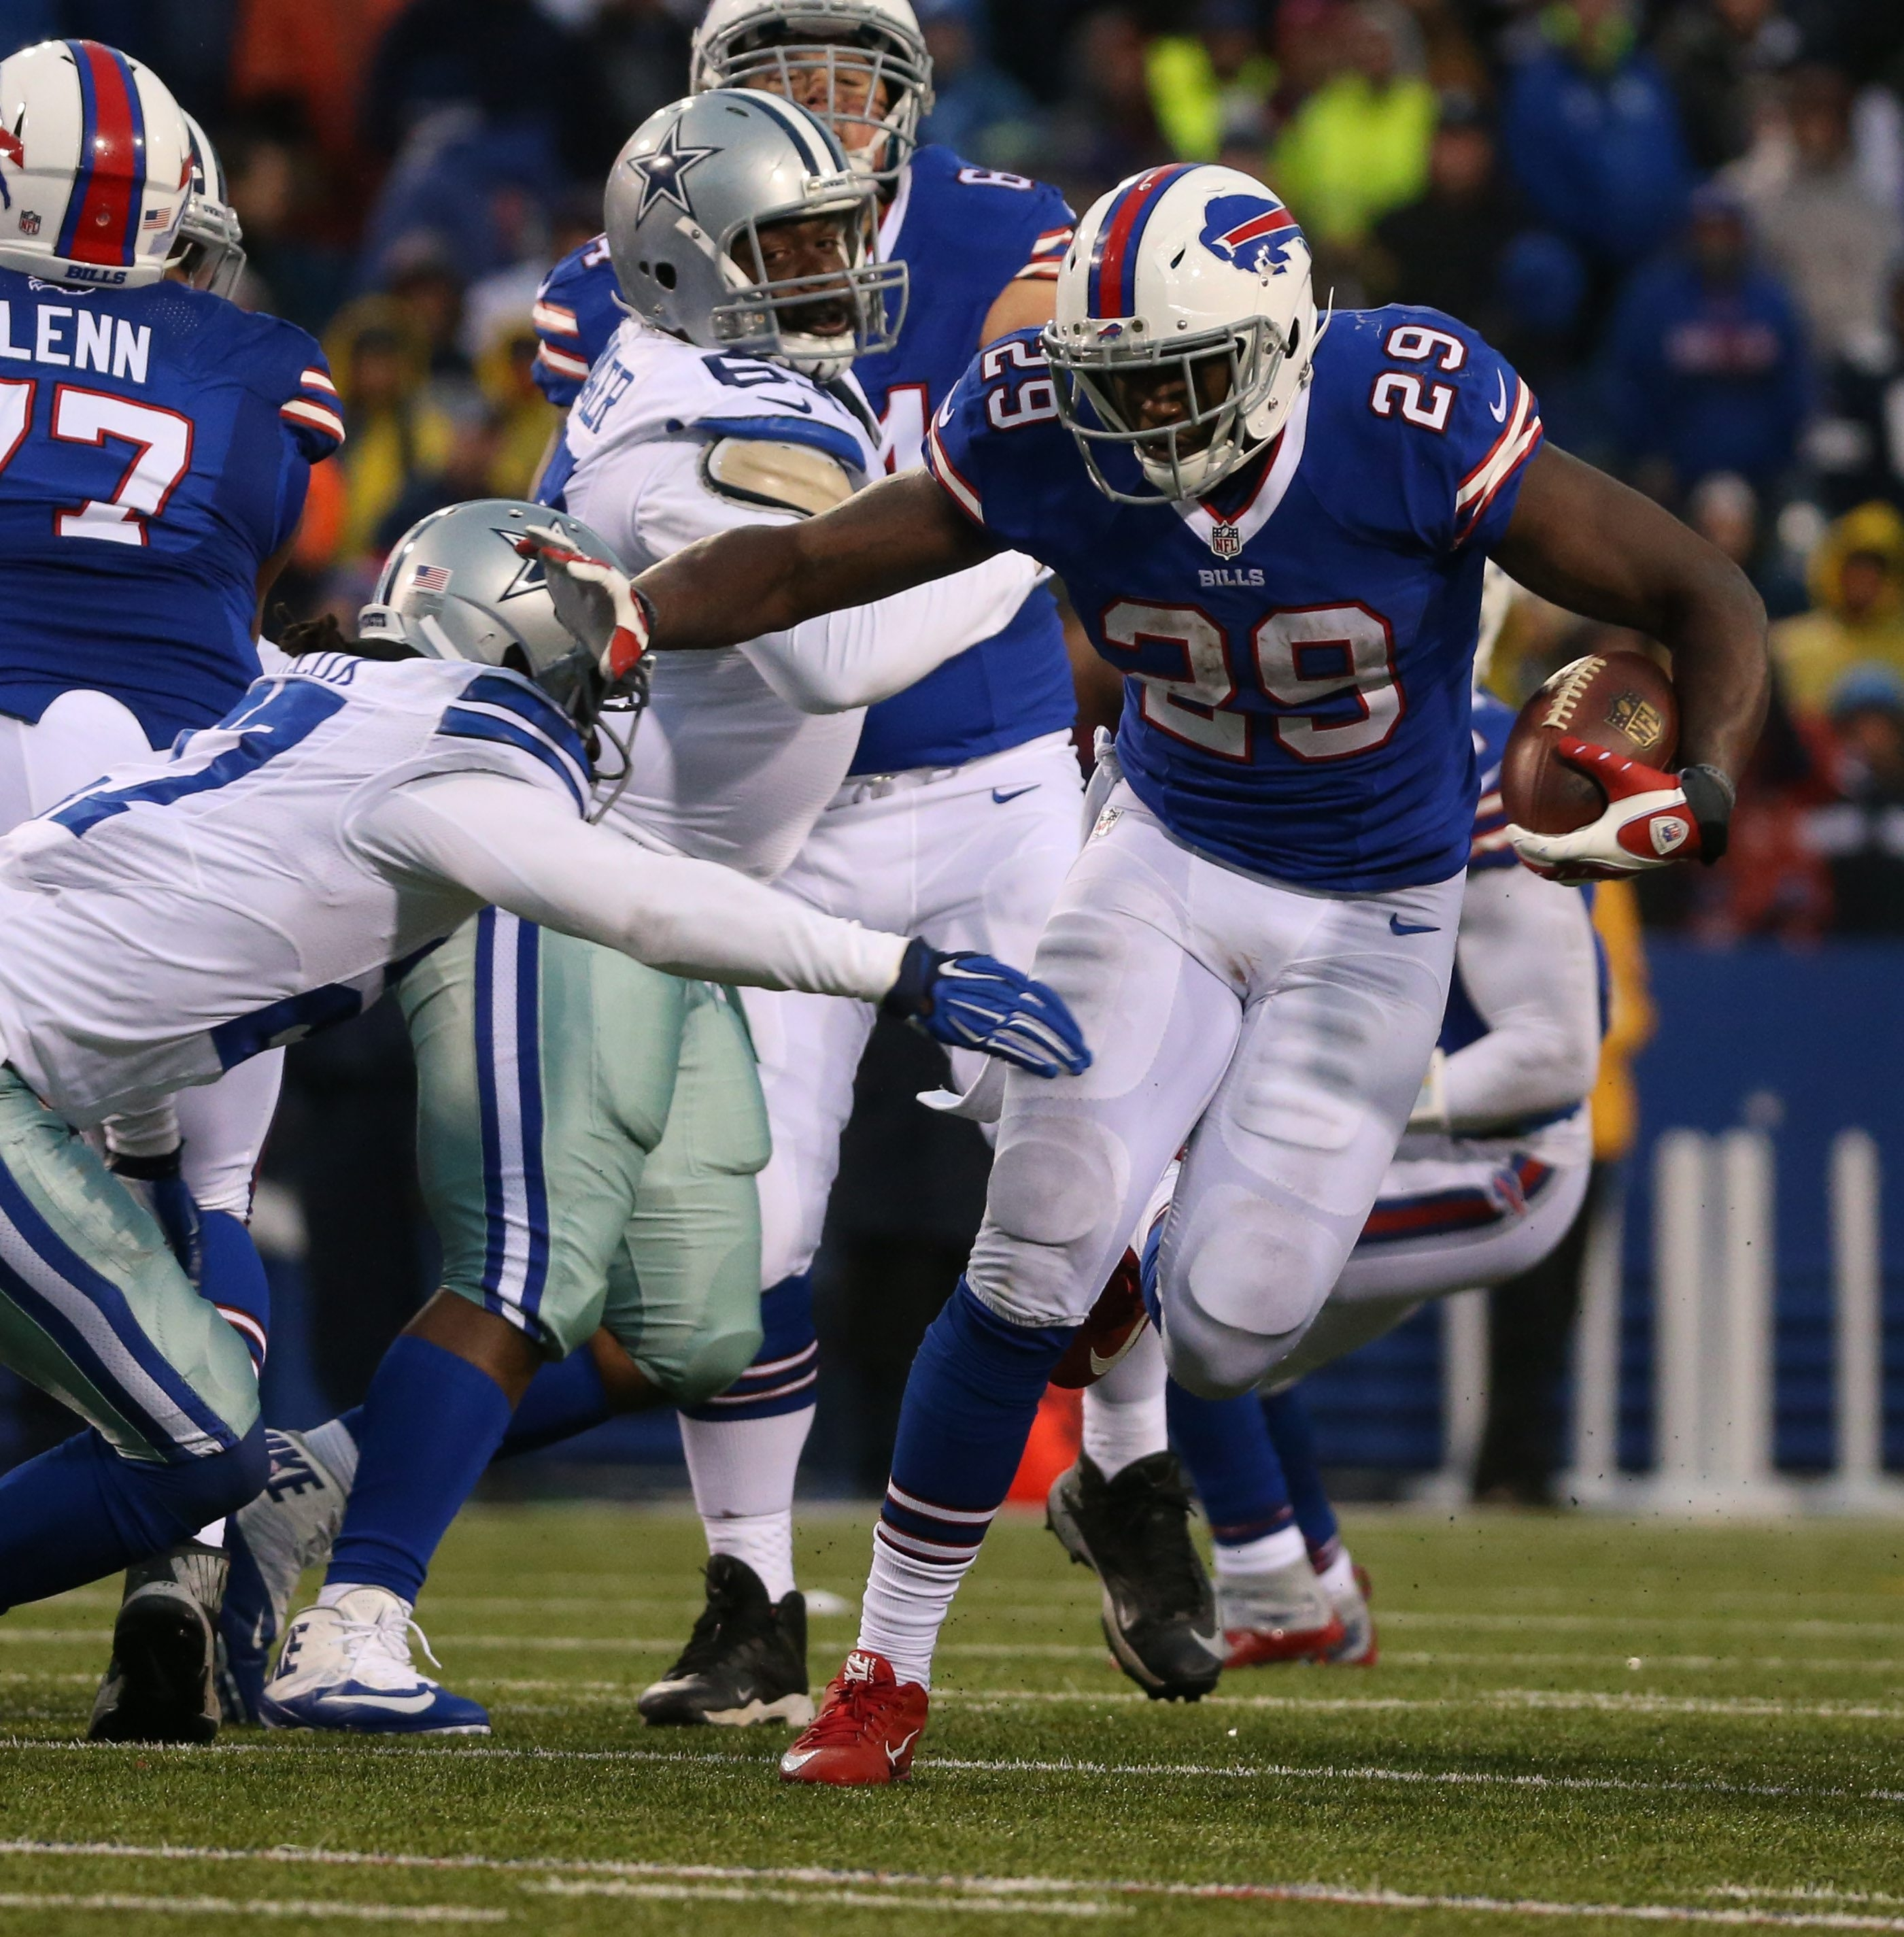 Buffalo Bills running back Karlos Williams (29) rushes for a first down in the fourth quarter at Ralph Wilson Stadium in Orchard Park, NY on Sunday, Dec. 27, 2015.  (James P. McCoy/ Buffalo News)